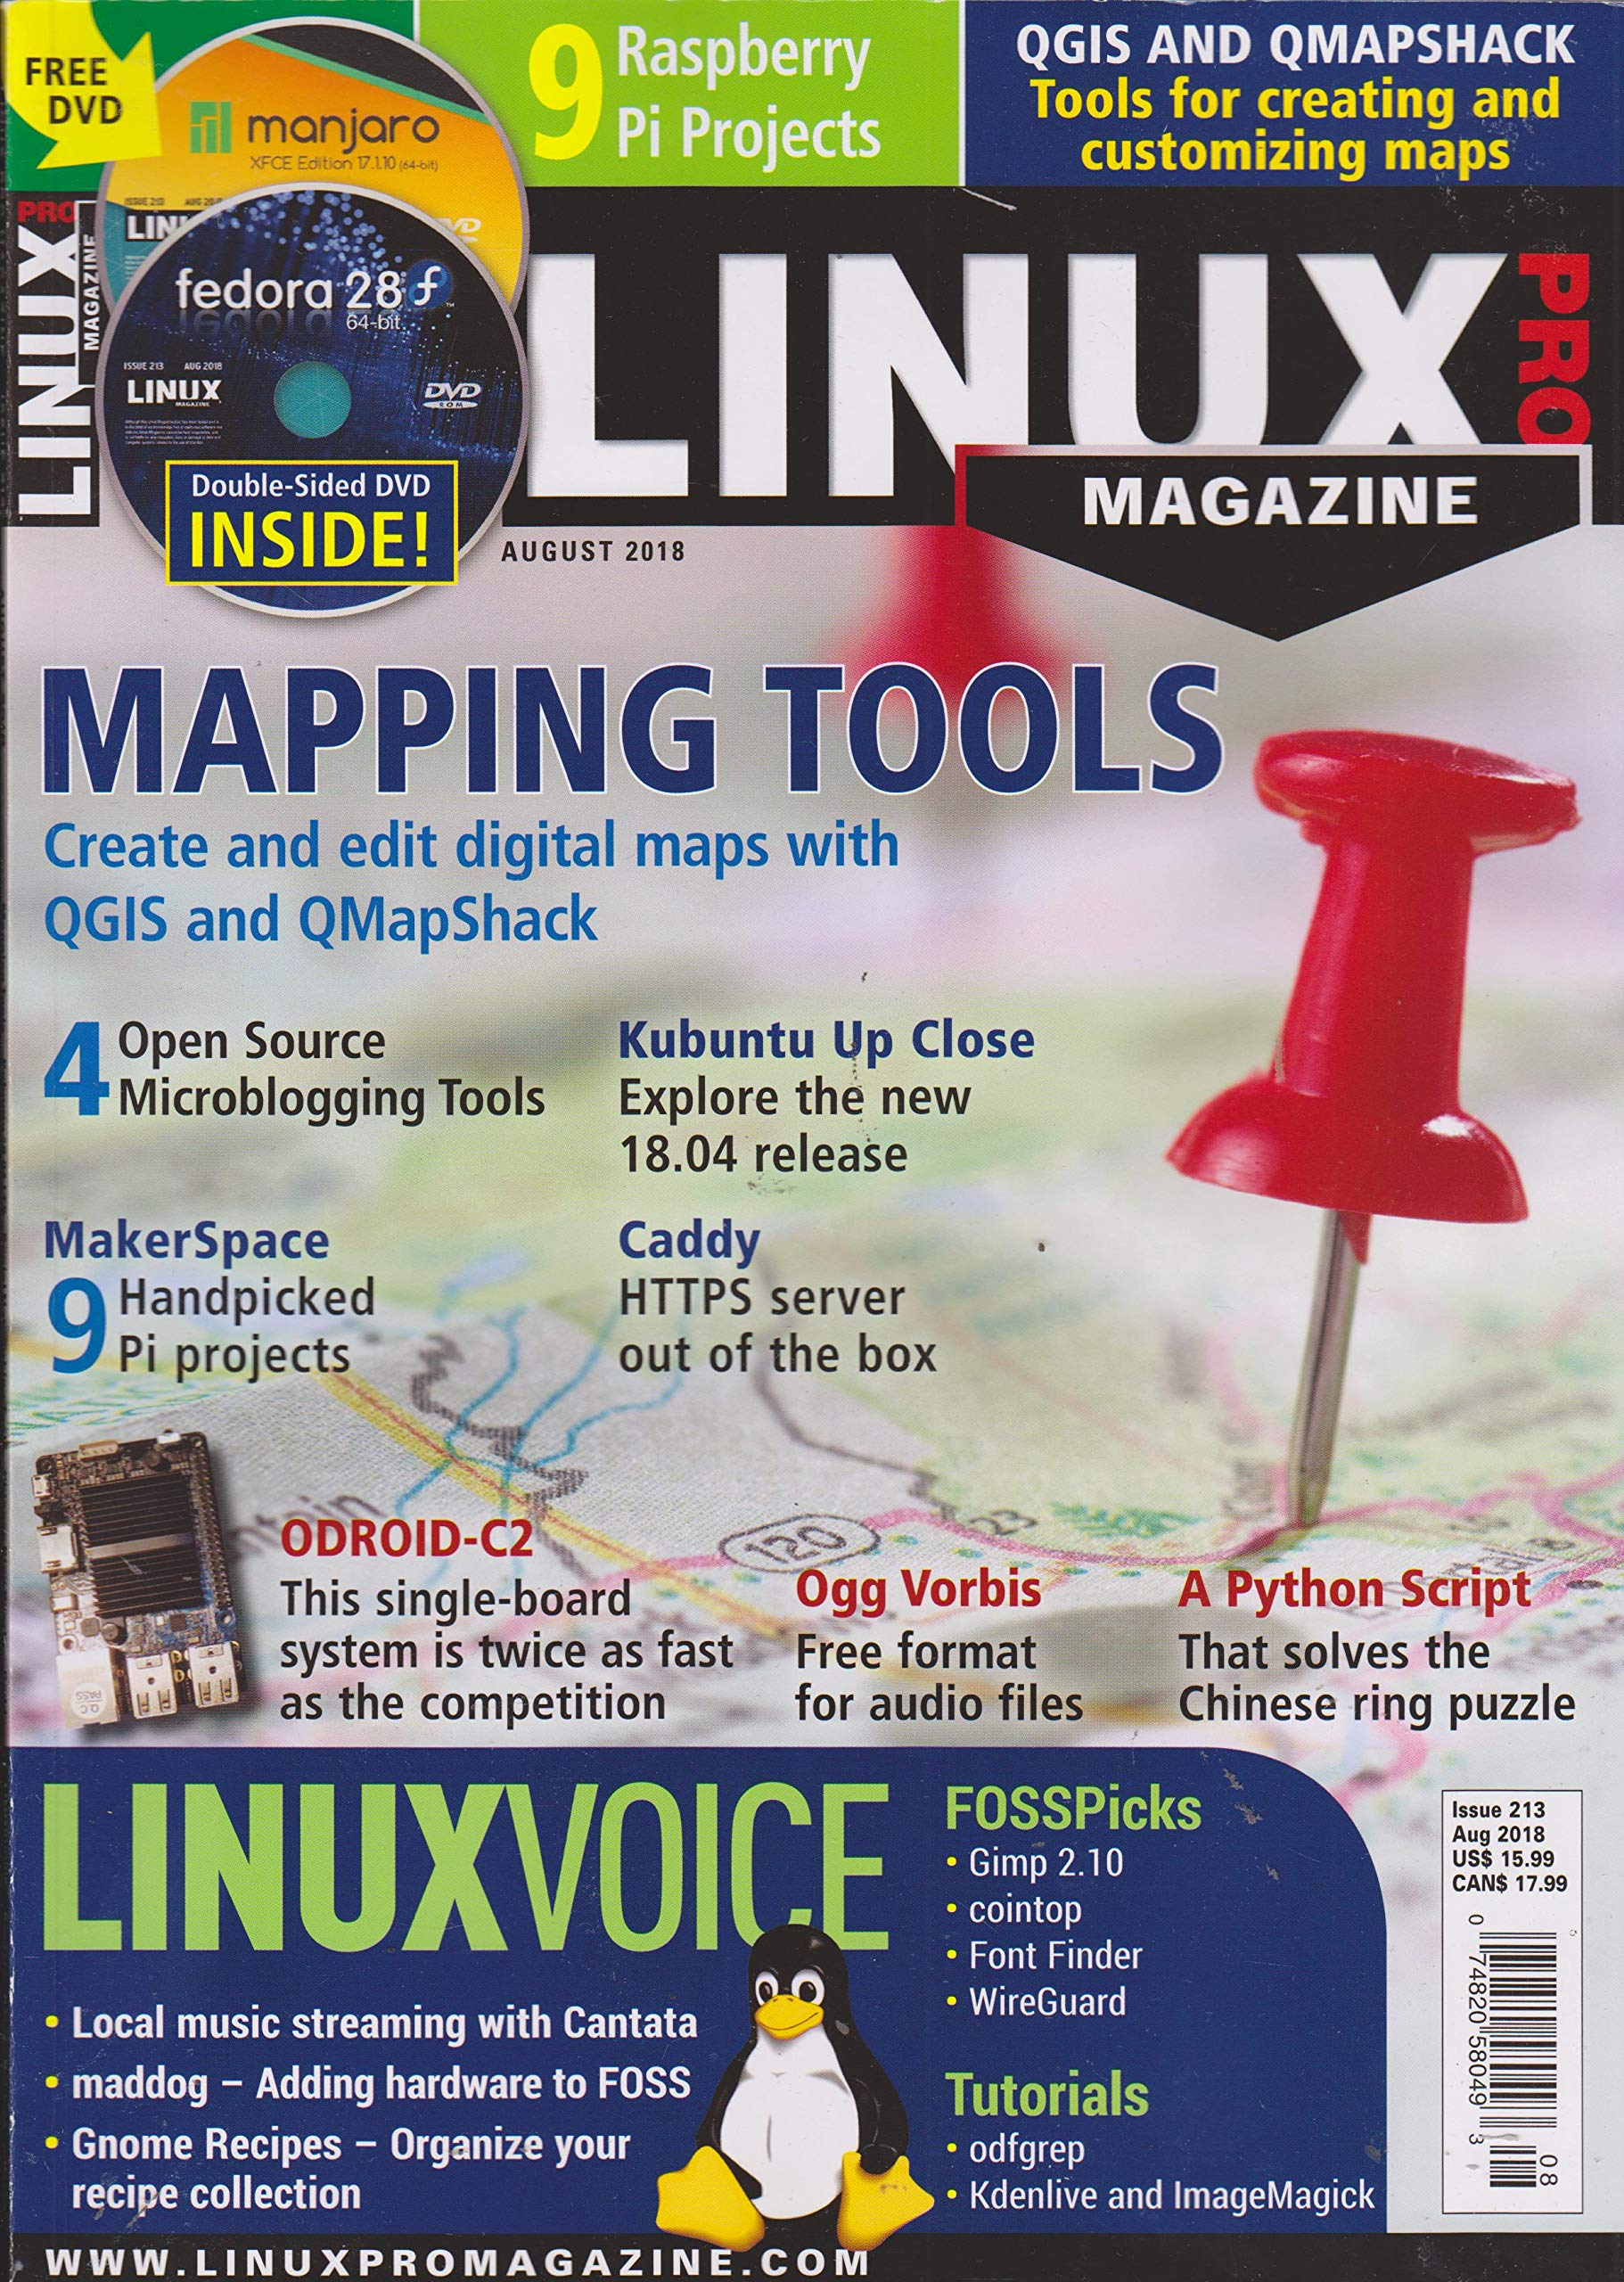 Linux Pro Magazine August 2018 Mapping Tools: Linux Pro